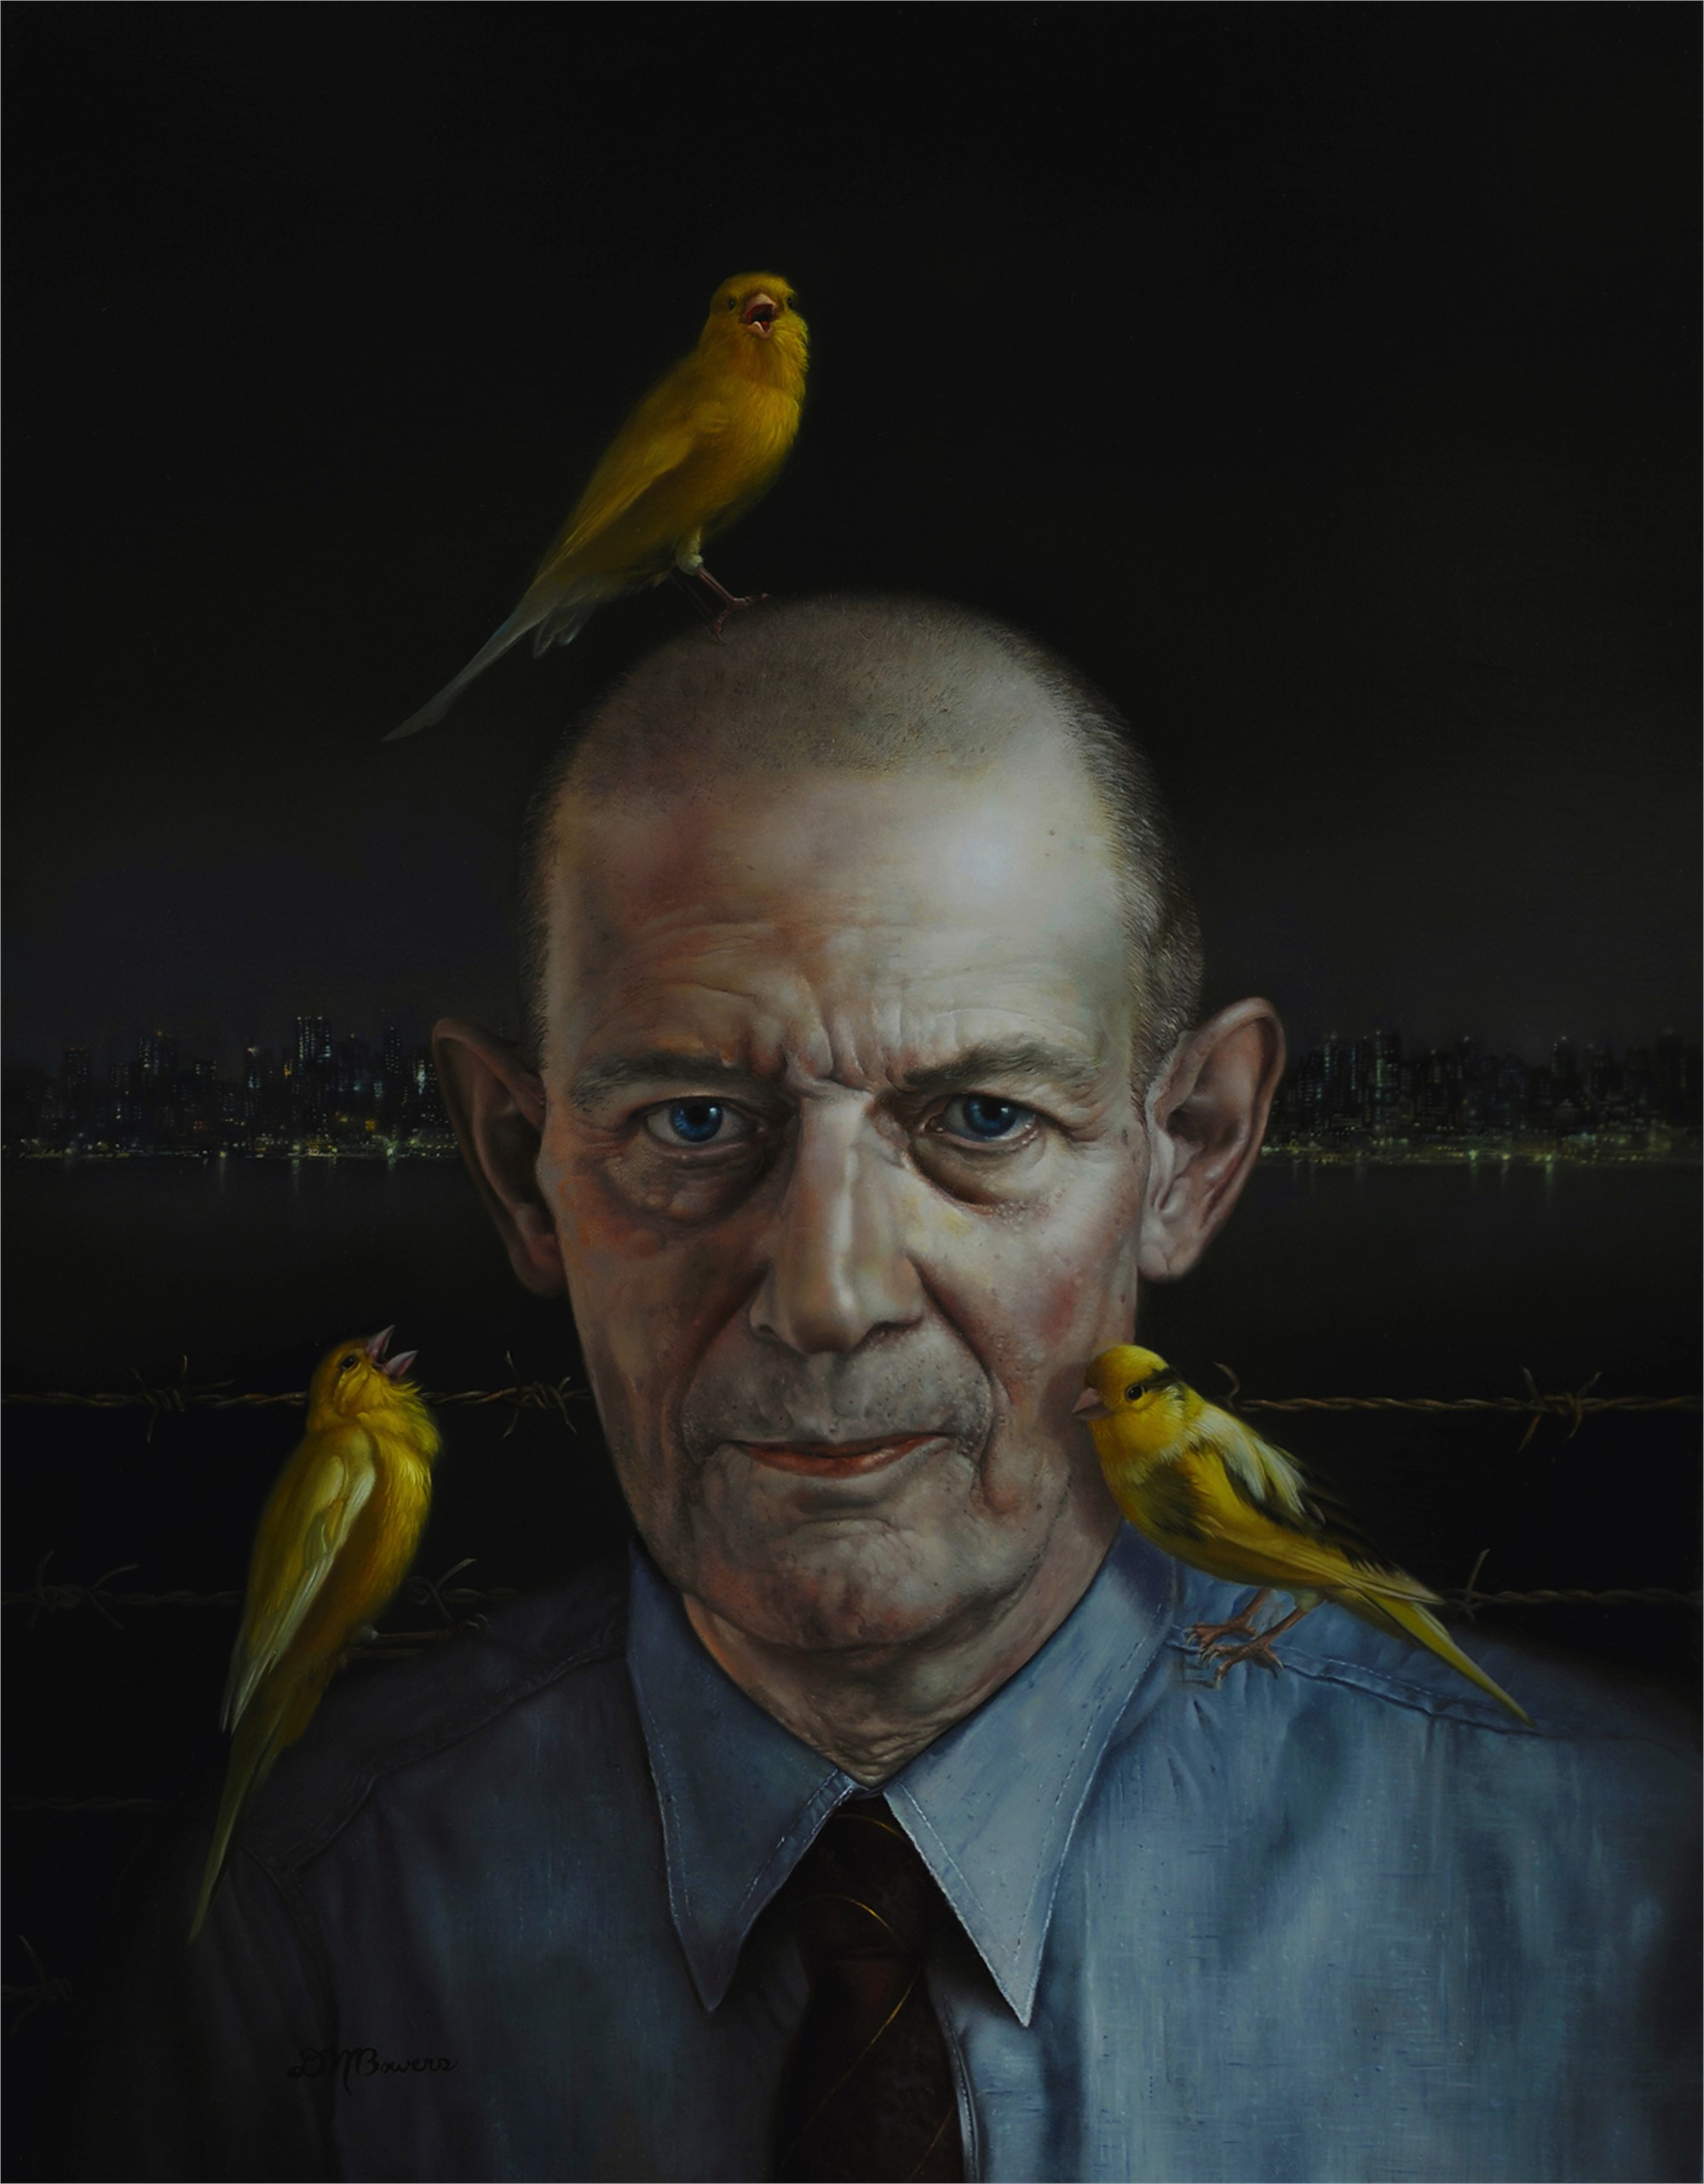 Robert Stroud (Birdman of Alcatraz) by David Michael Bowers